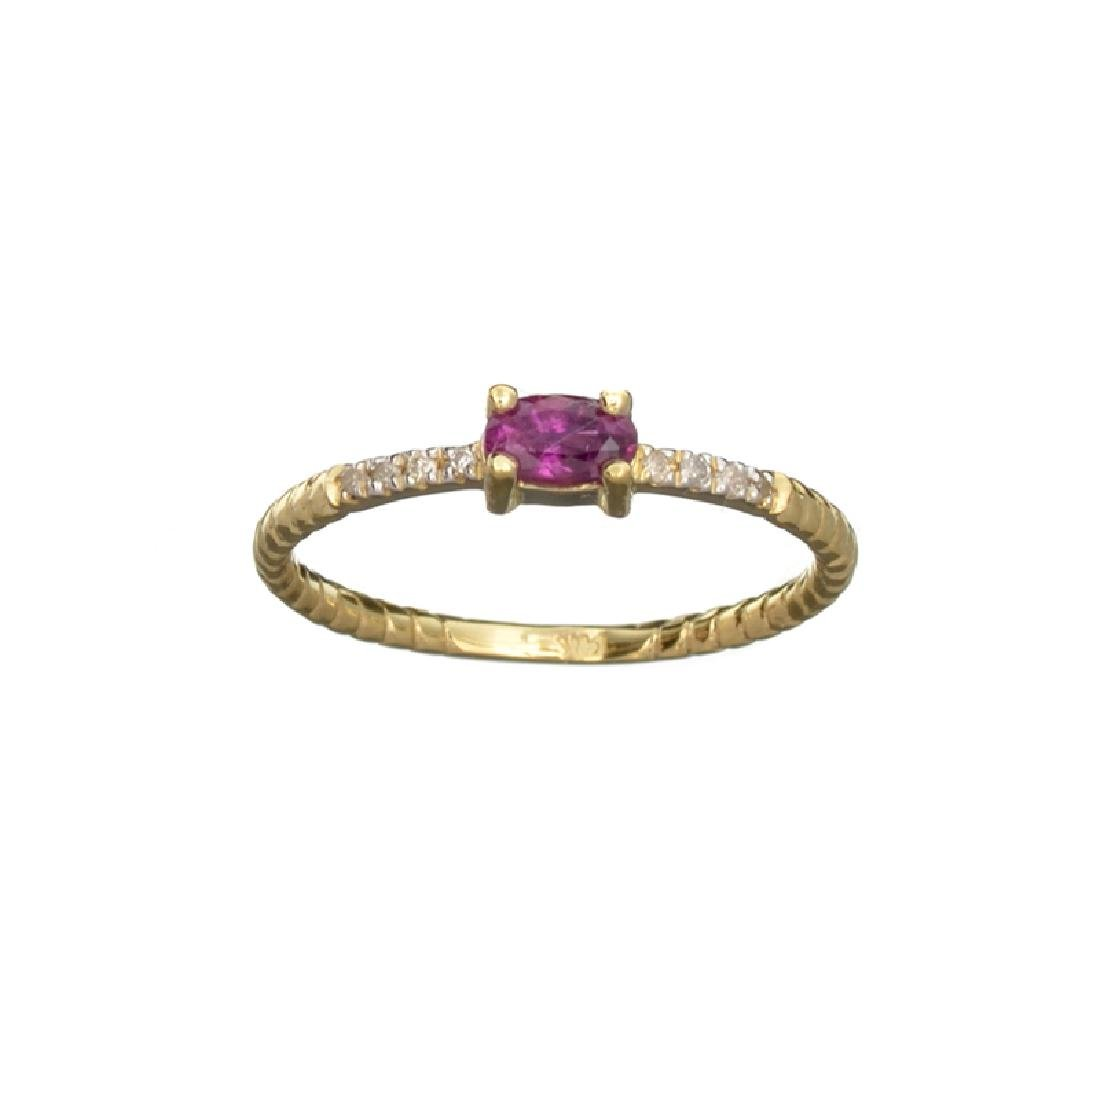 APP: 0.6k Fine Jewelry 14 KT Gold, 0.29CT Red Ruby And